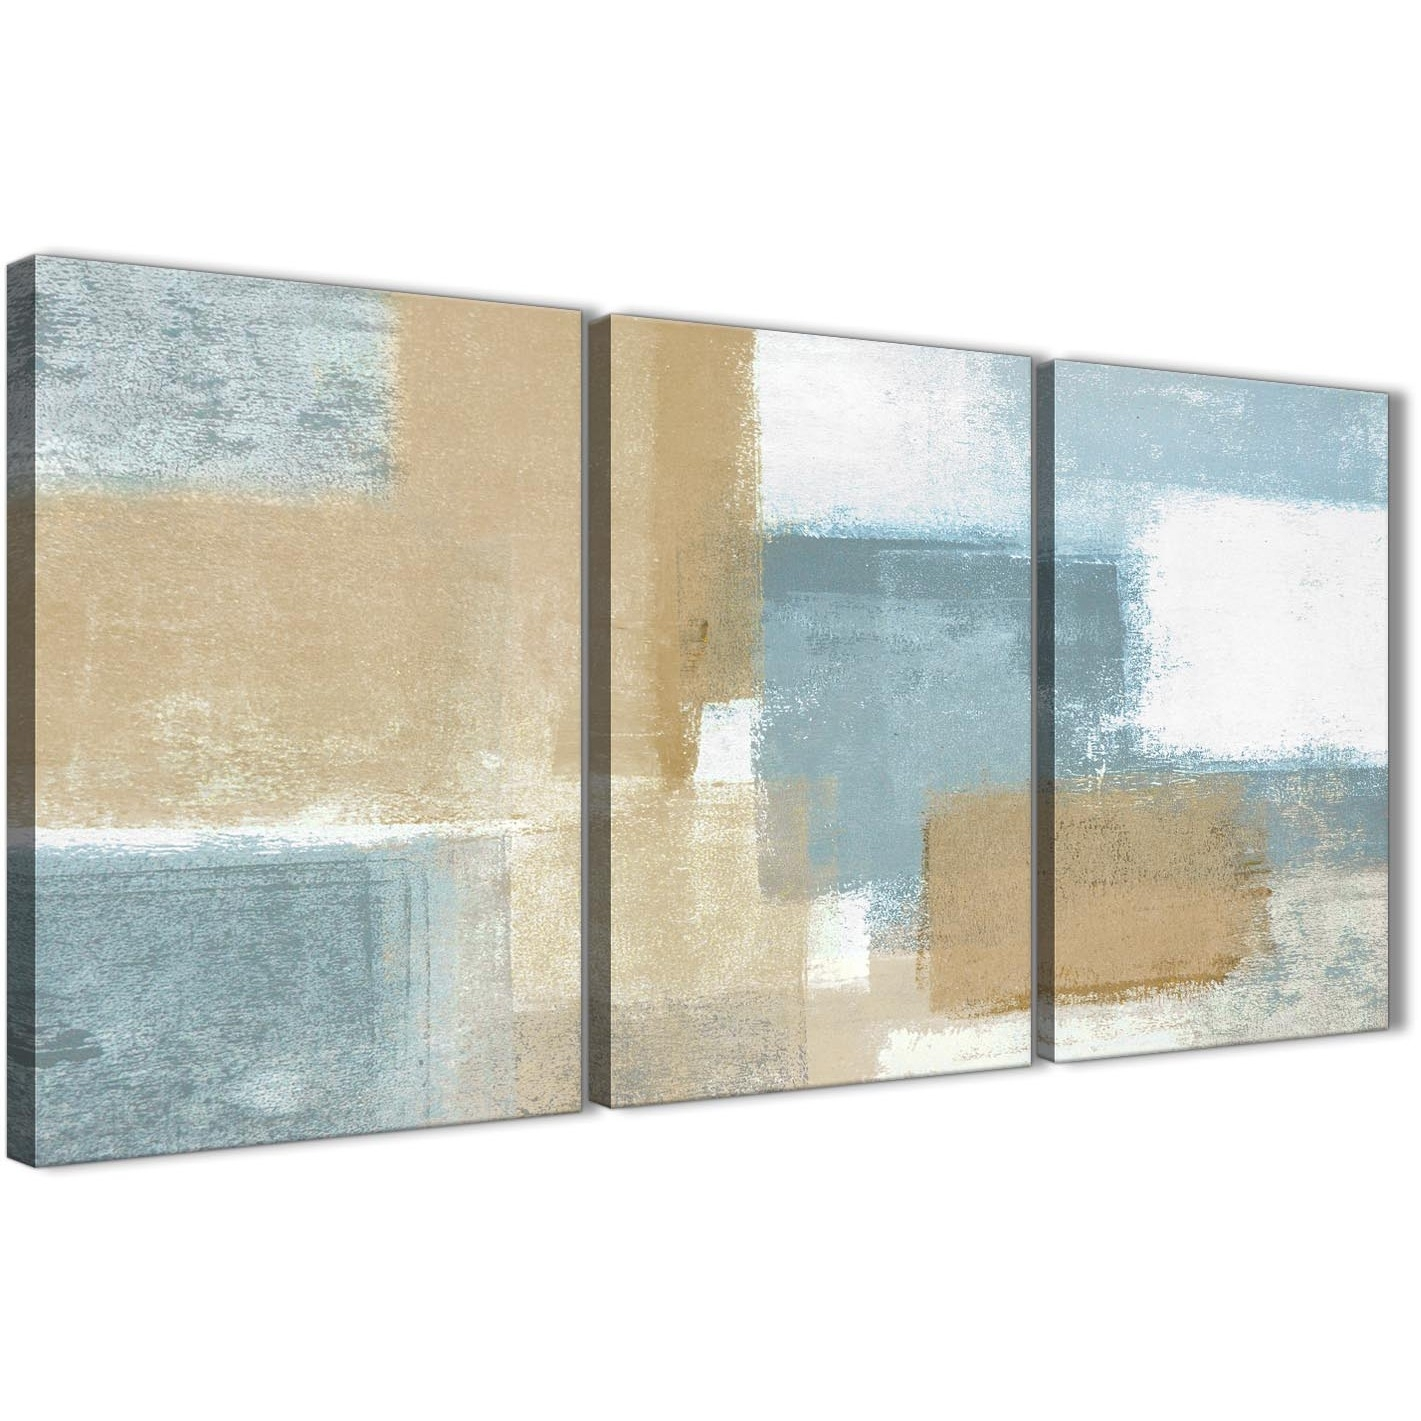 Blue Beige Brown Abstract Painting Canvas Wall Art Print – Multi With Newest Blue And Brown Canvas Wall Art (View 5 of 15)